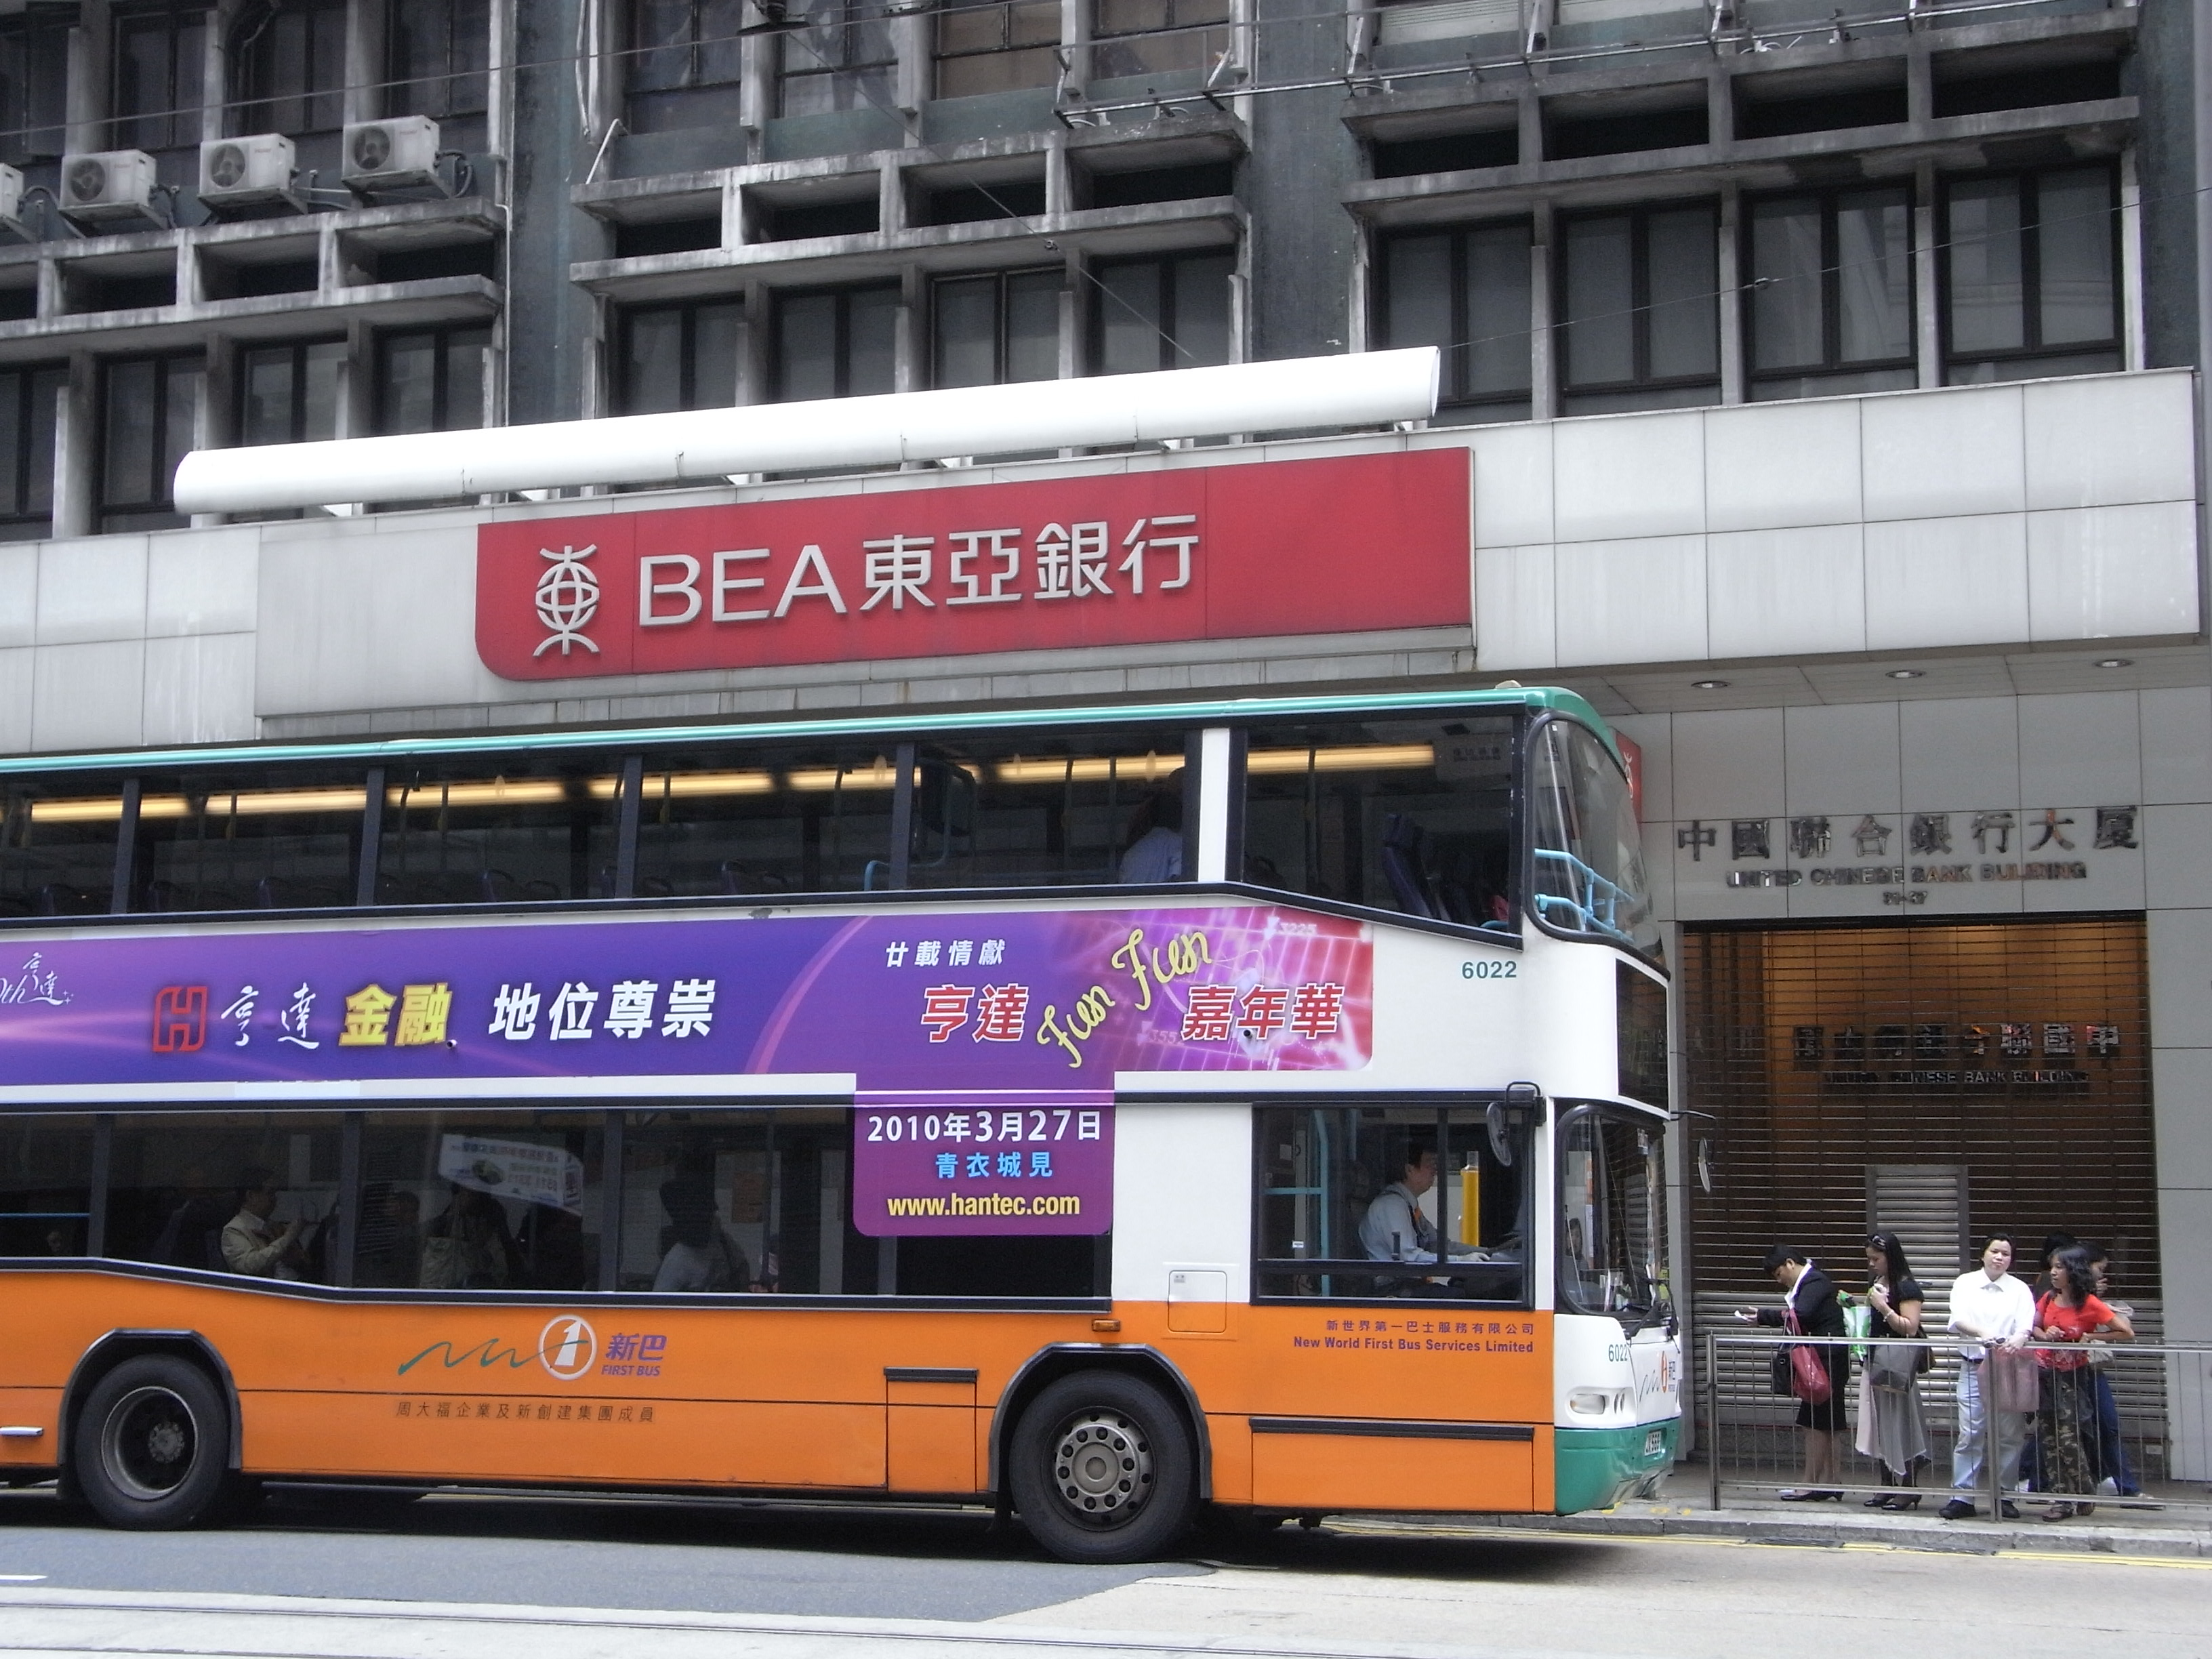 file hk central 31 des voeux road united chinese bank bea feb 2010 first bus stop. Black Bedroom Furniture Sets. Home Design Ideas